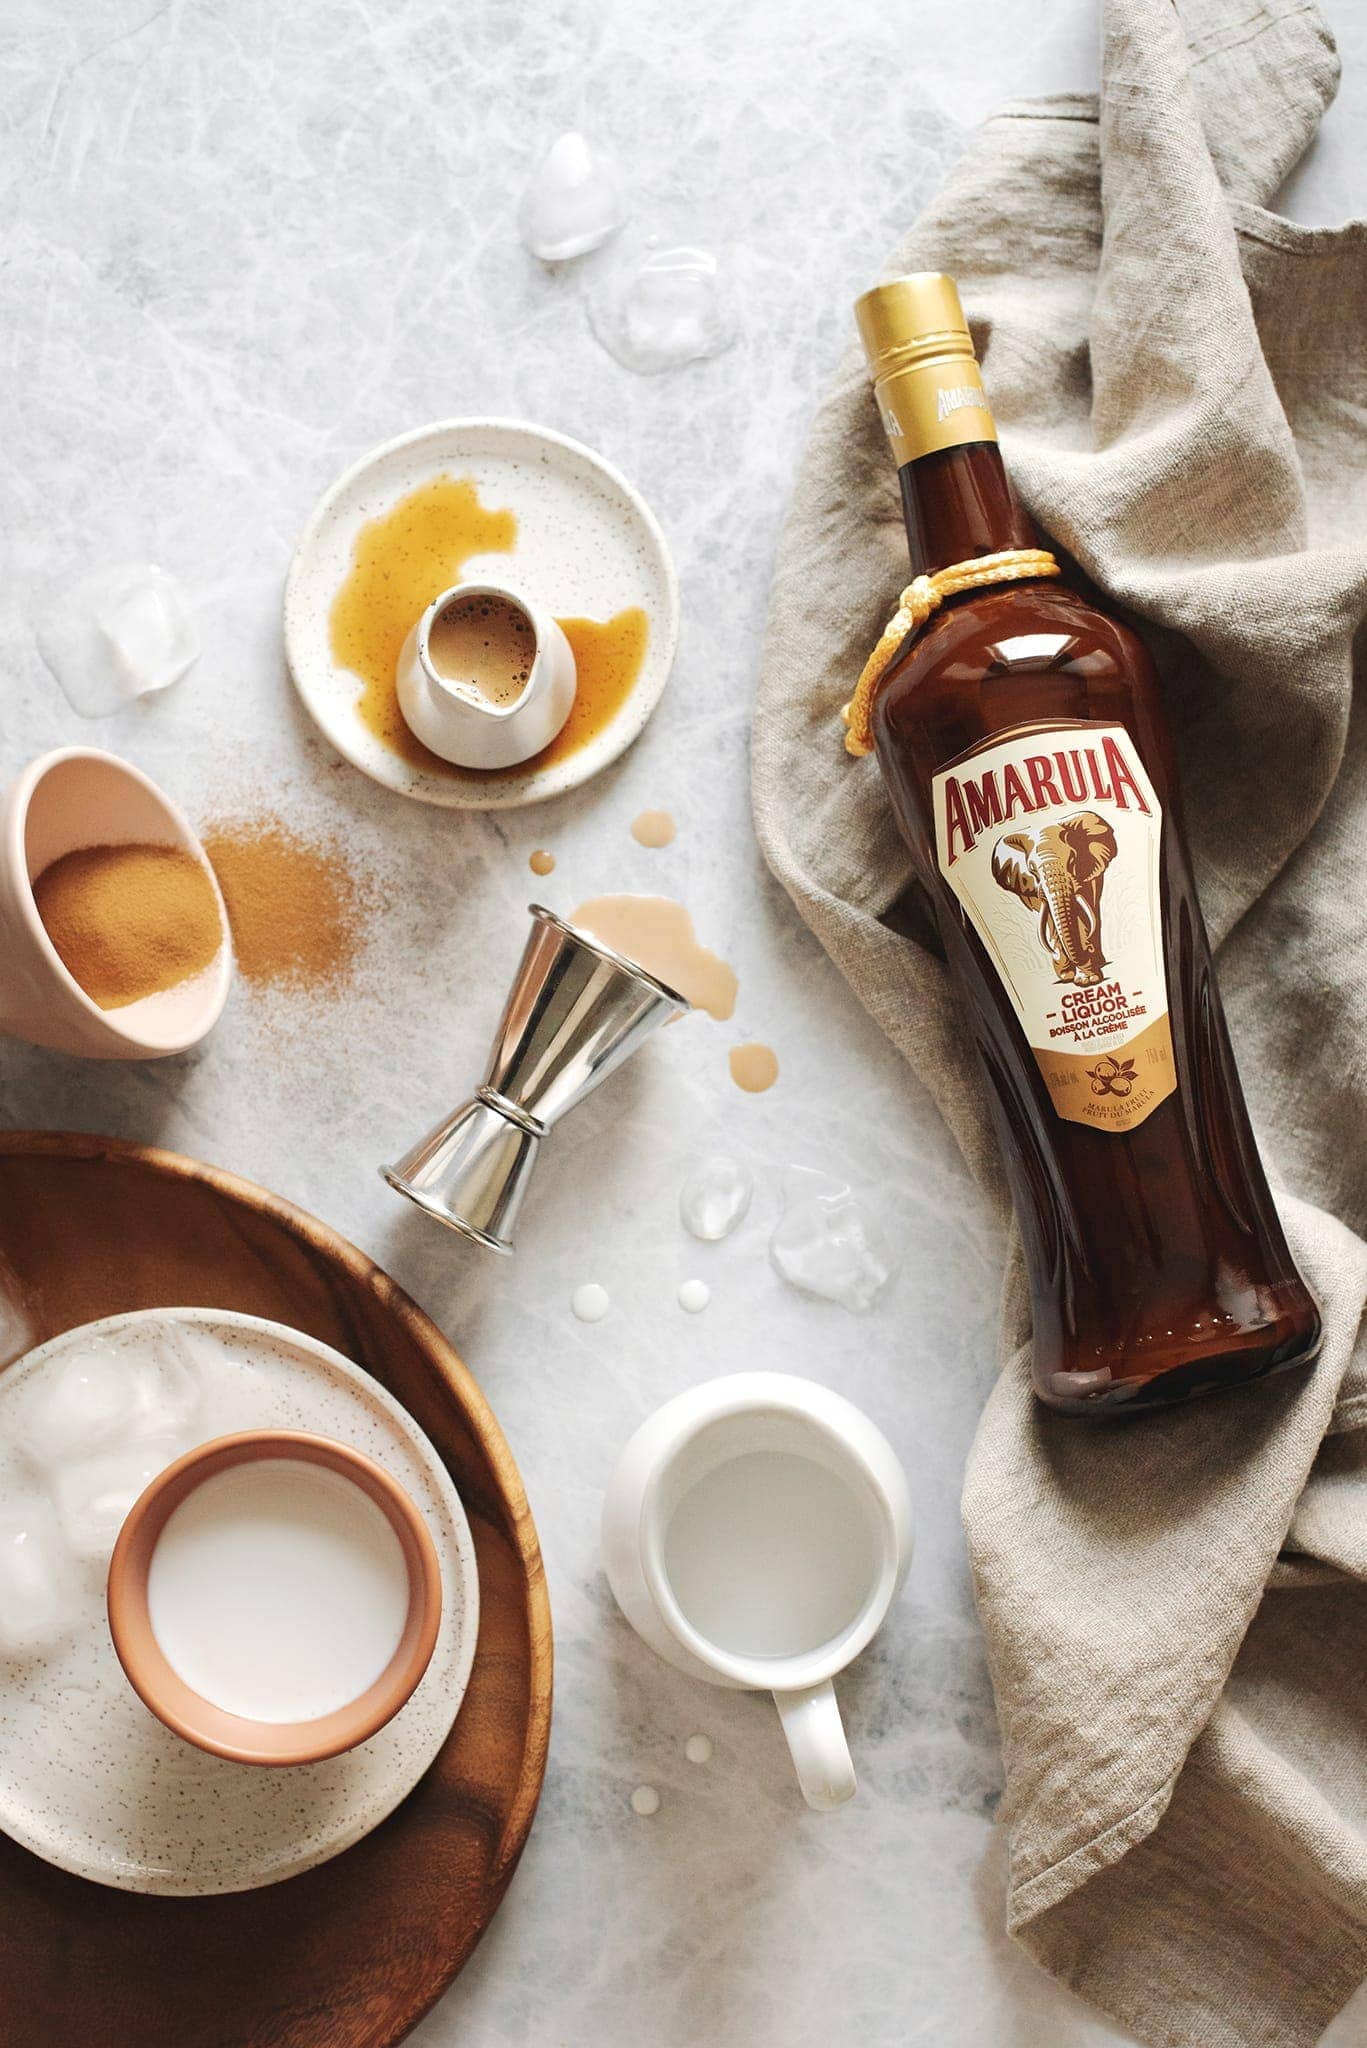 Amarula bottle and coffee spilled on table